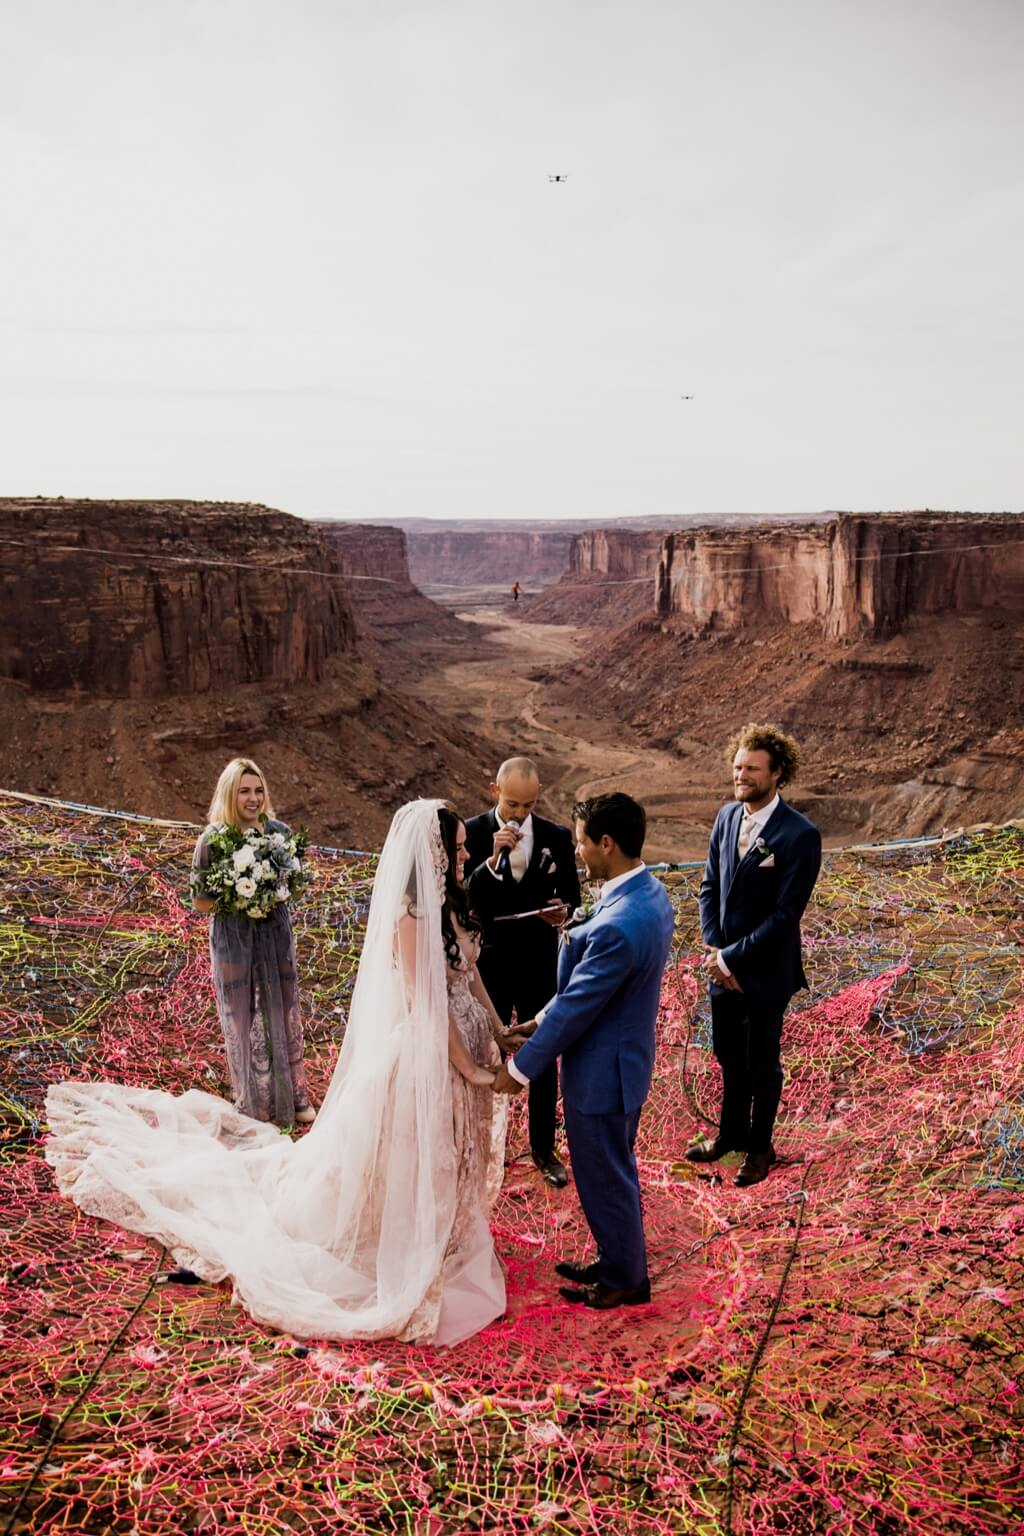 Hearnes Elopement Photography - moab canyon spacenet wedding